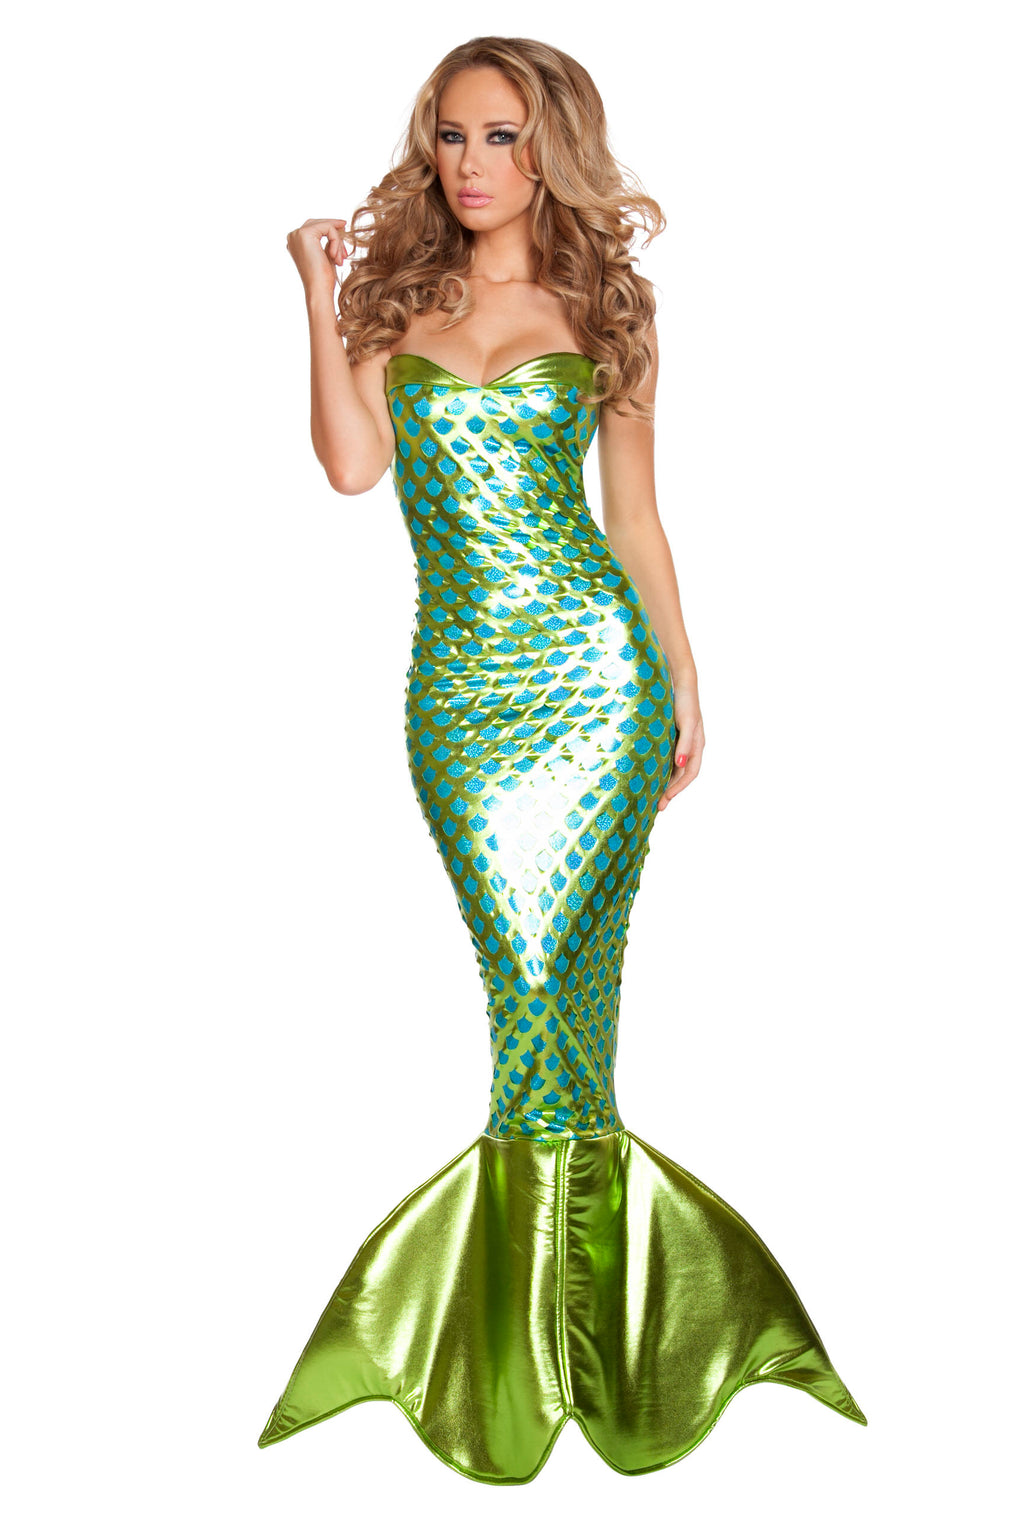 1-Piece-Sexy-Mermaid-Sea-Siren-Lace-Up-Tube-Green-Dress-w/Tail-Costume